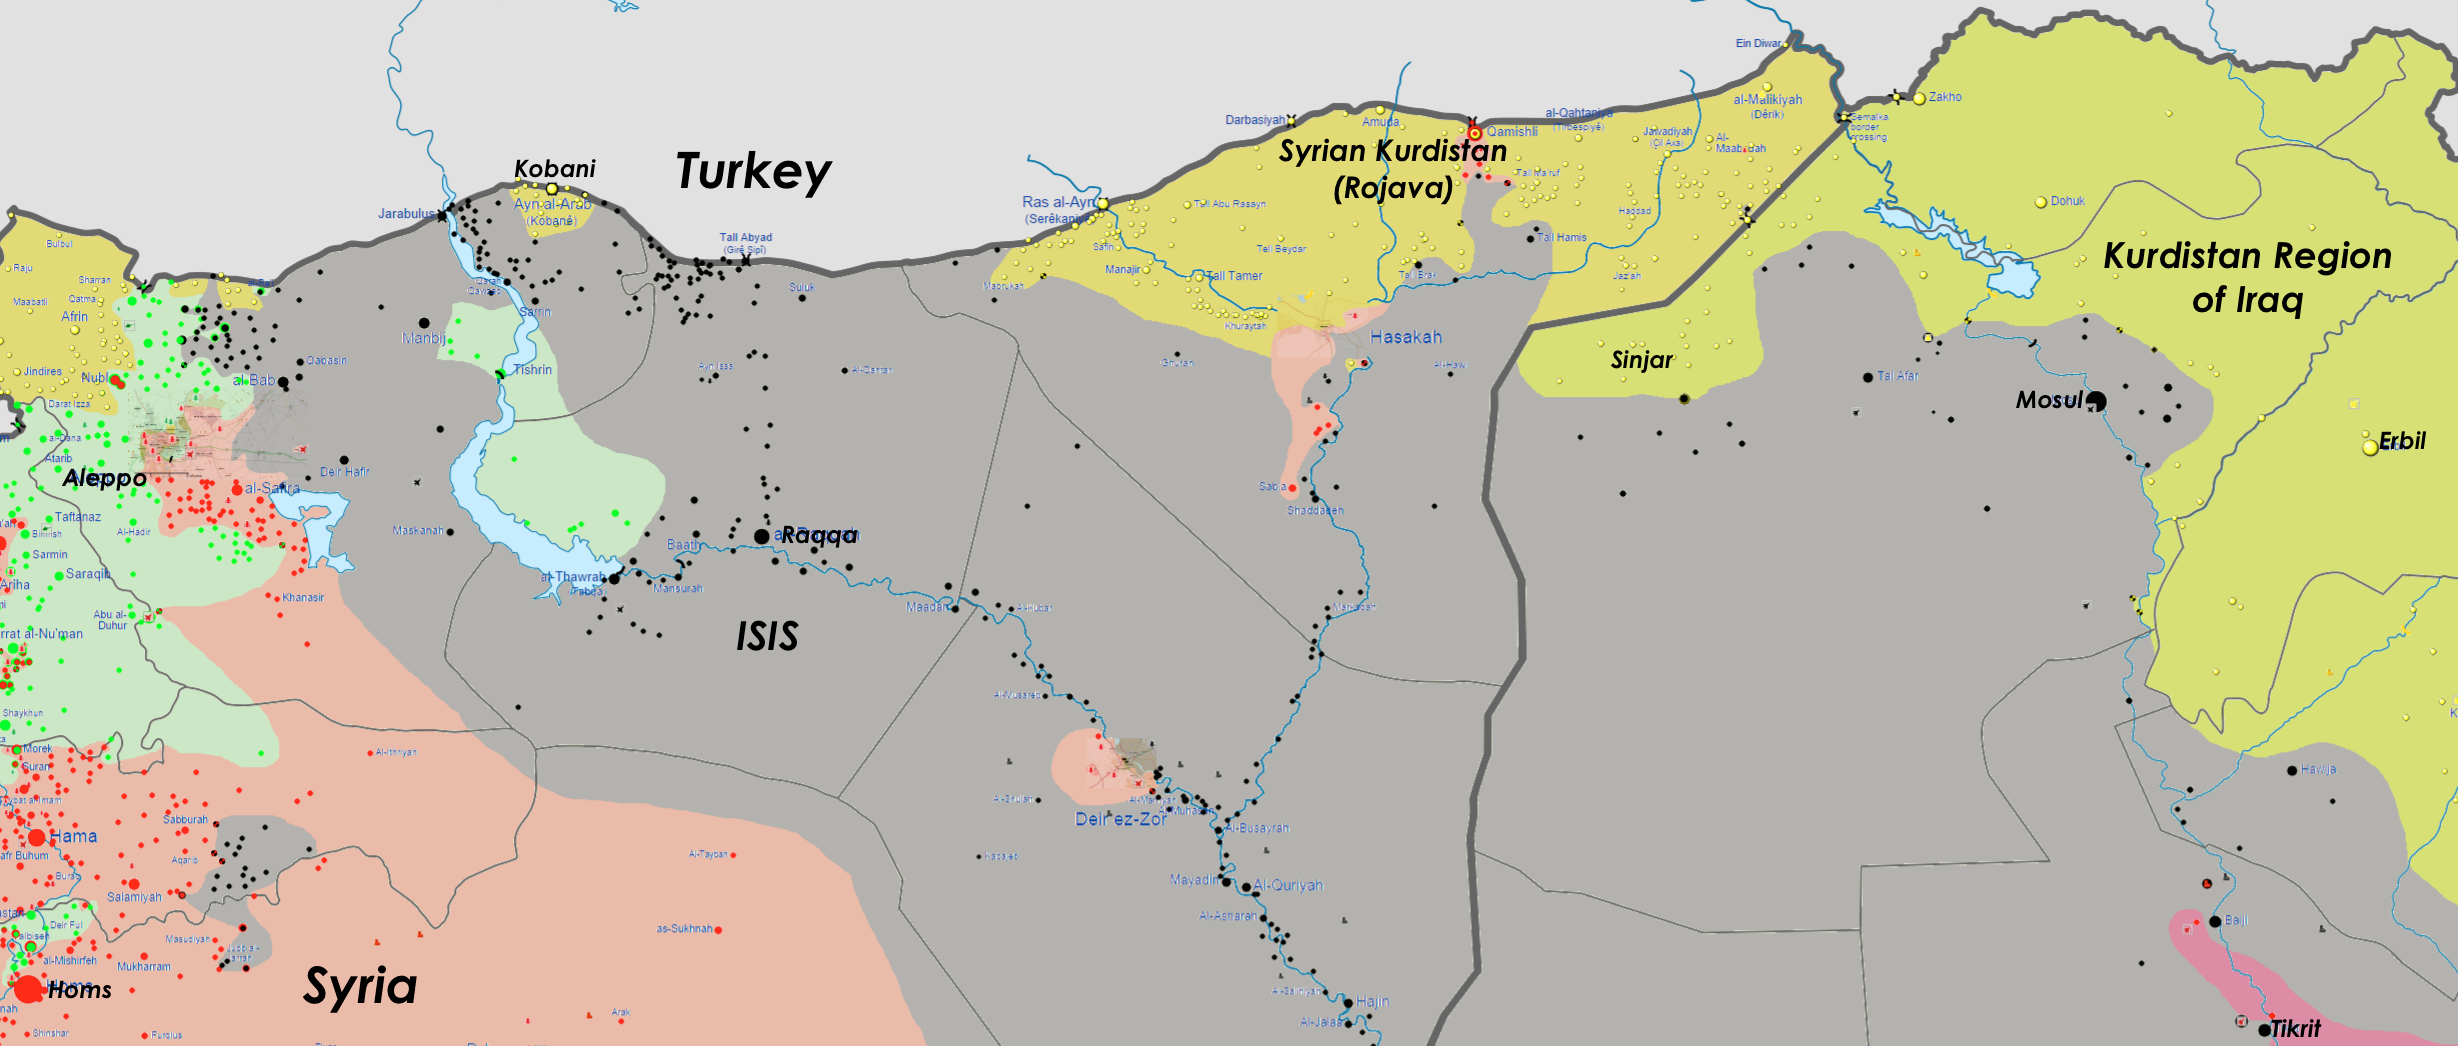 Click to enlarge: Detailed conflict map of Northern Syria and Northern Iraq, September 26, 2014, including Kobani / Ayn al-Arab. (Adapted from Wikimedia)